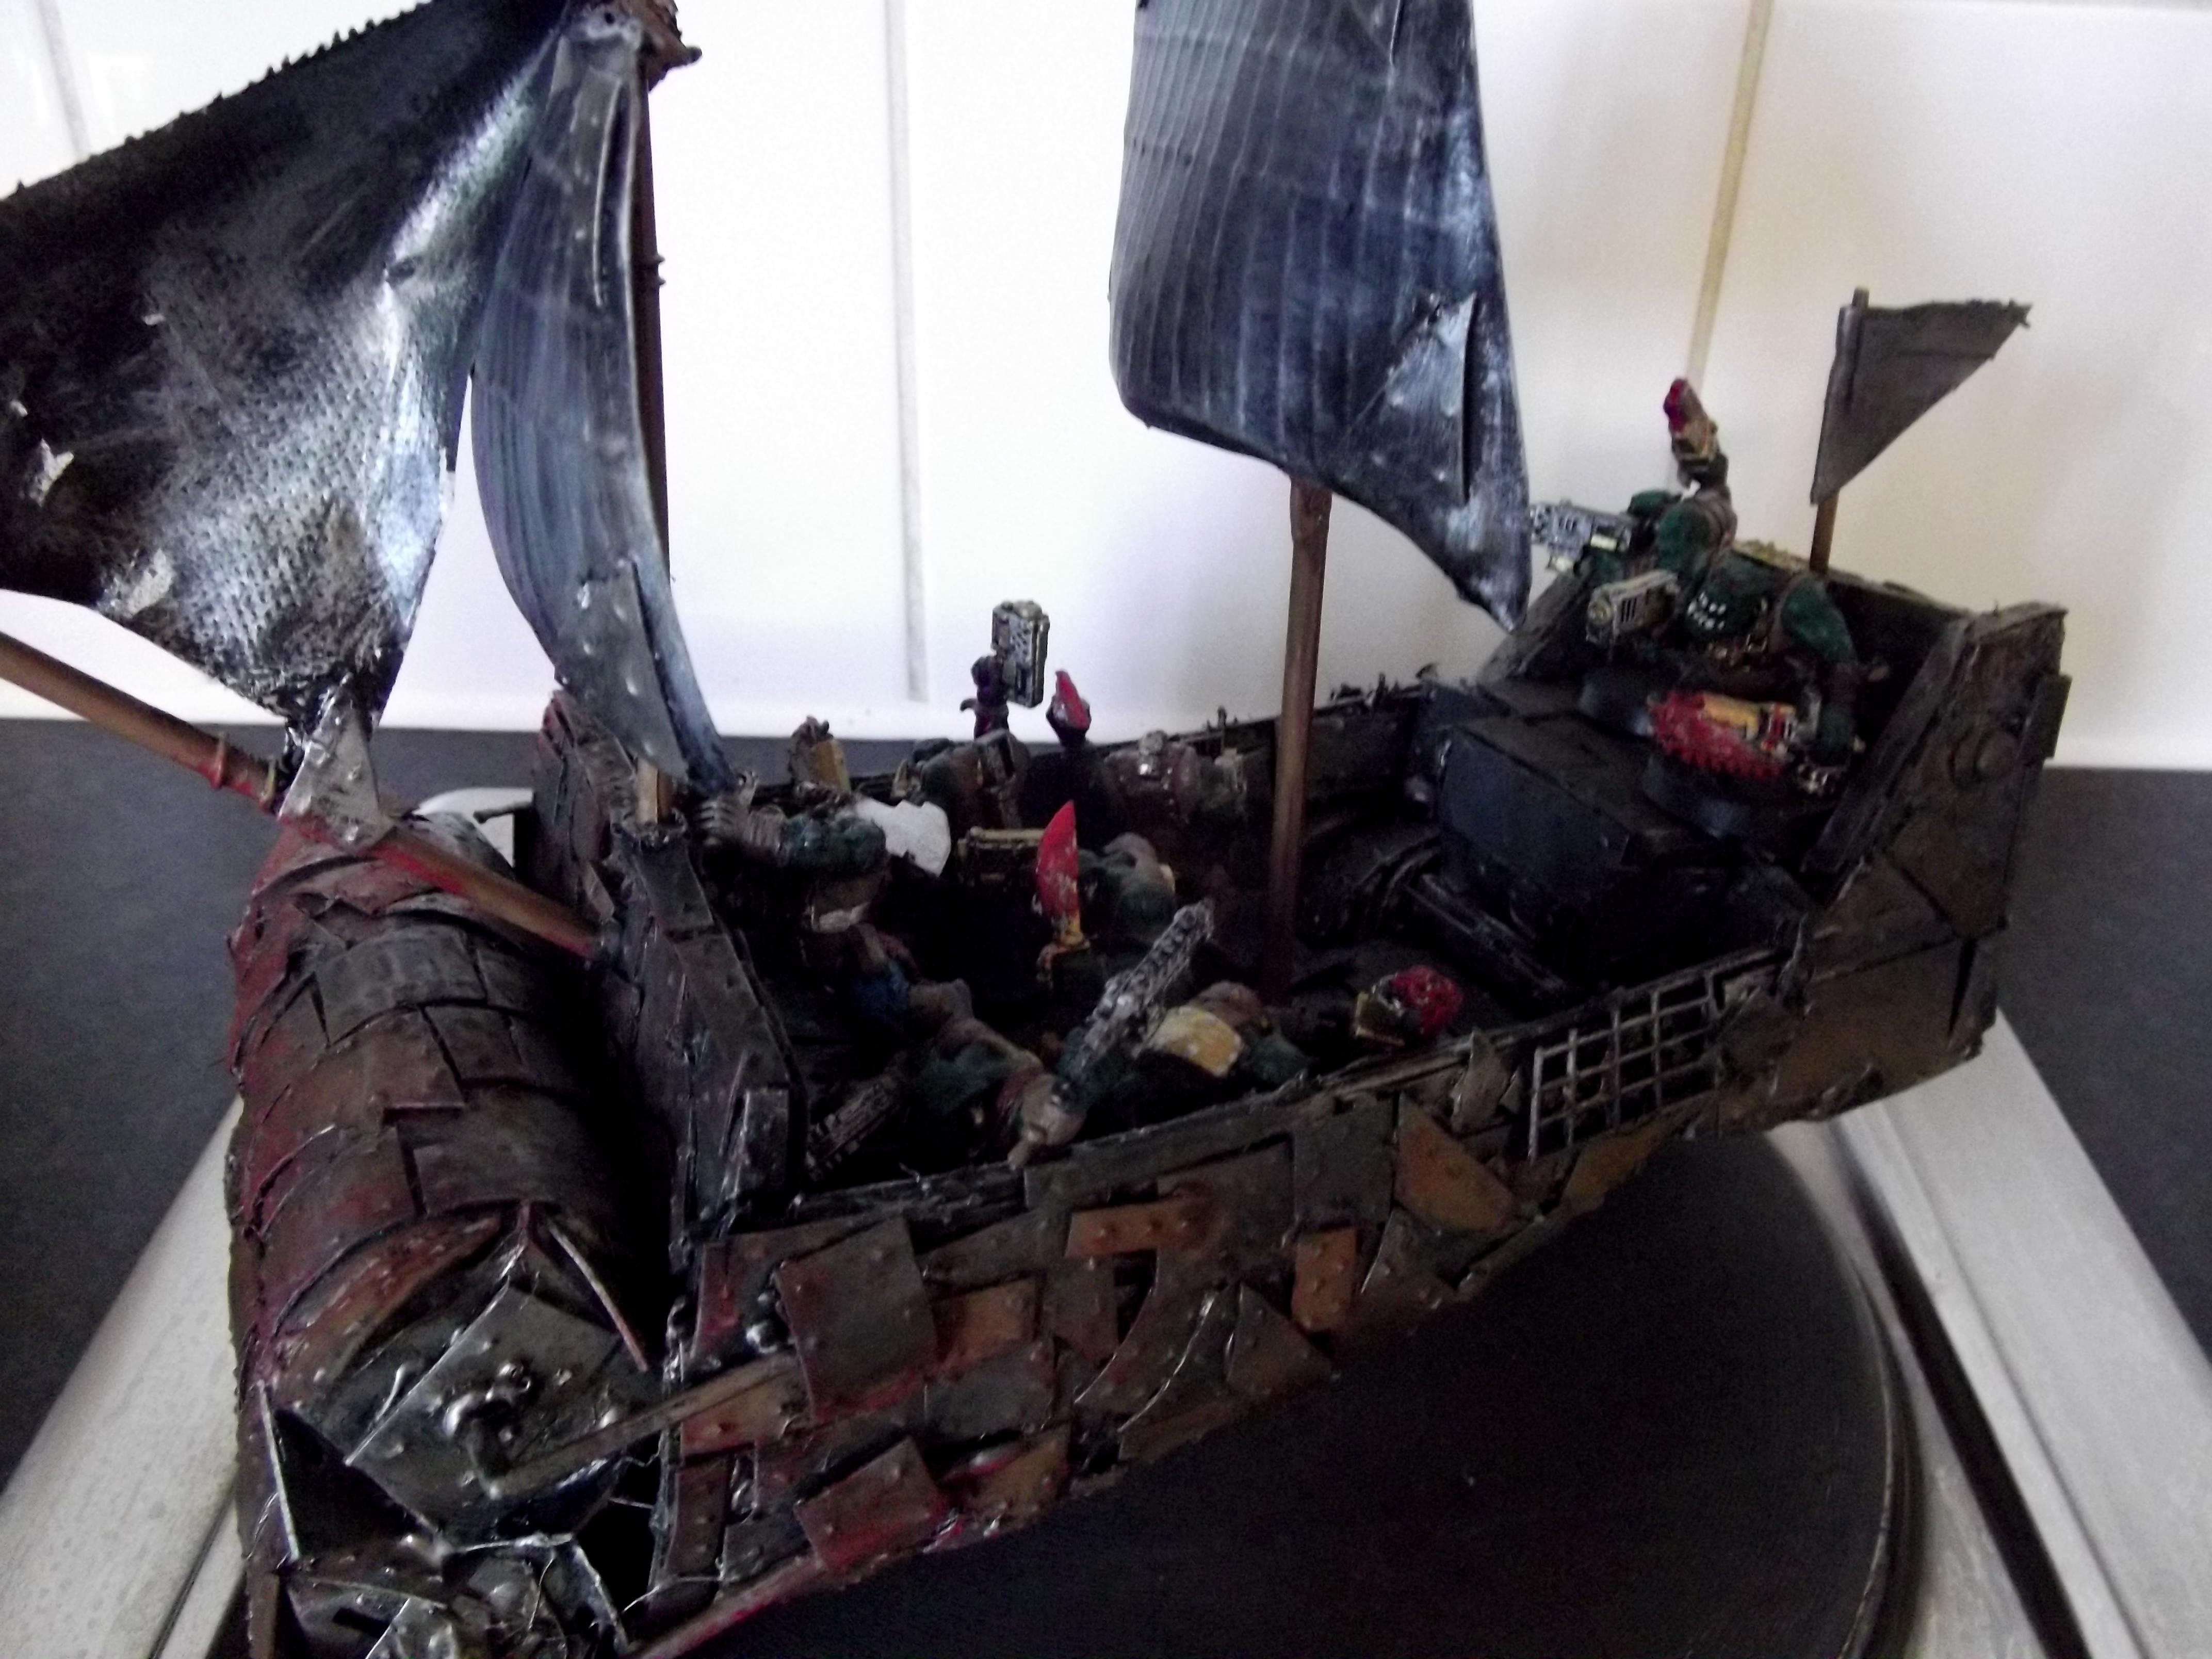 Battlewagon, Conversion, Deffrolla, Freebooter, Looted, Orks, Pirate, Scratch Build, Ship, Wagon